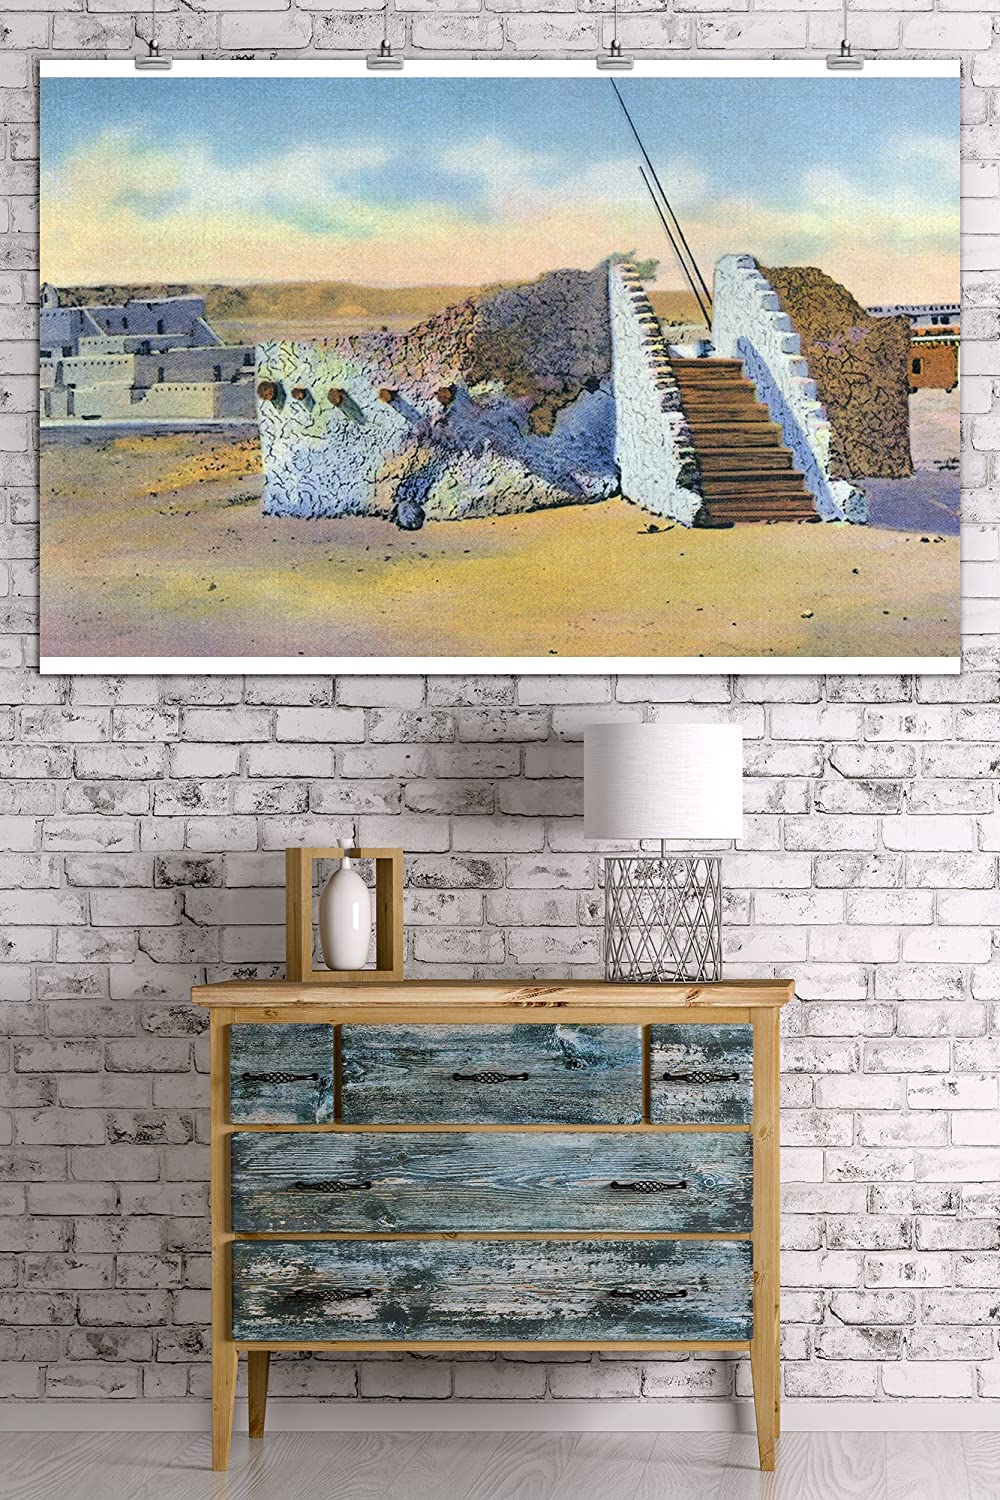 Amazon.com: New Mexico - View of a Pueblo Indian Estufa or Kiva (36x54 Giclee Gallery Print, Wall Decor Travel Poster): Posters & Prints